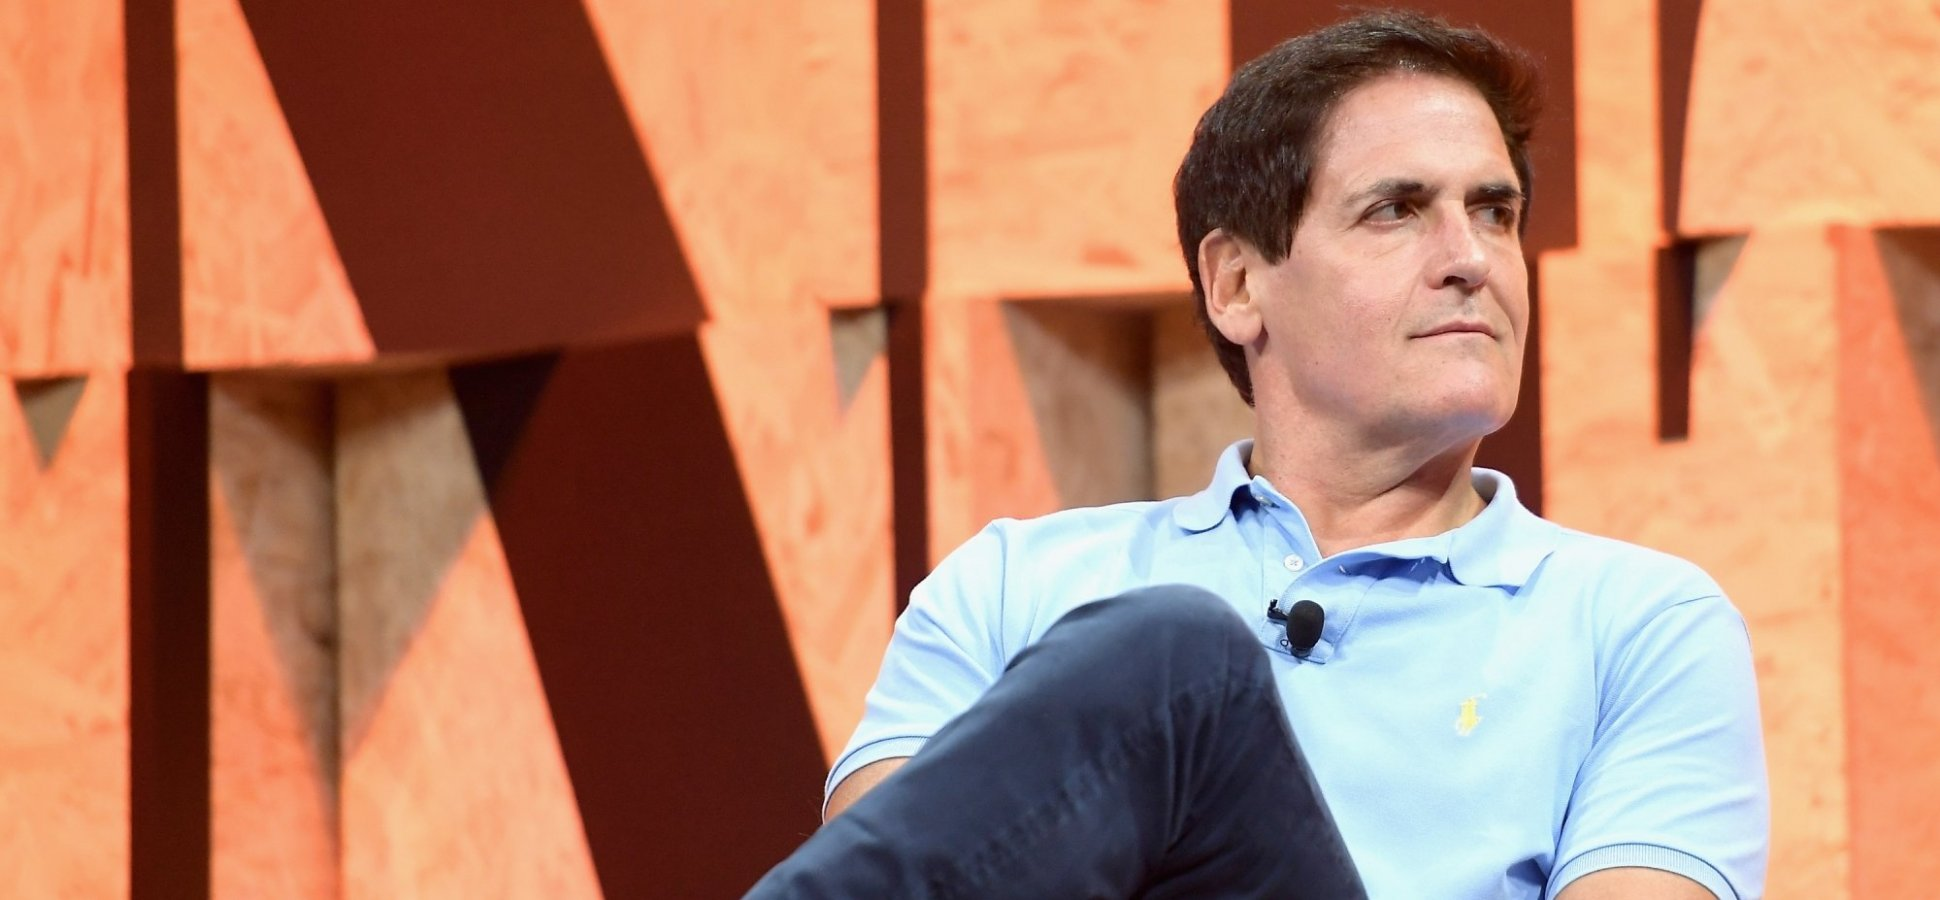 Mark Cuban Thinks Facebook's Libra Cryptocurrency Project Is 'a Big Mistake'